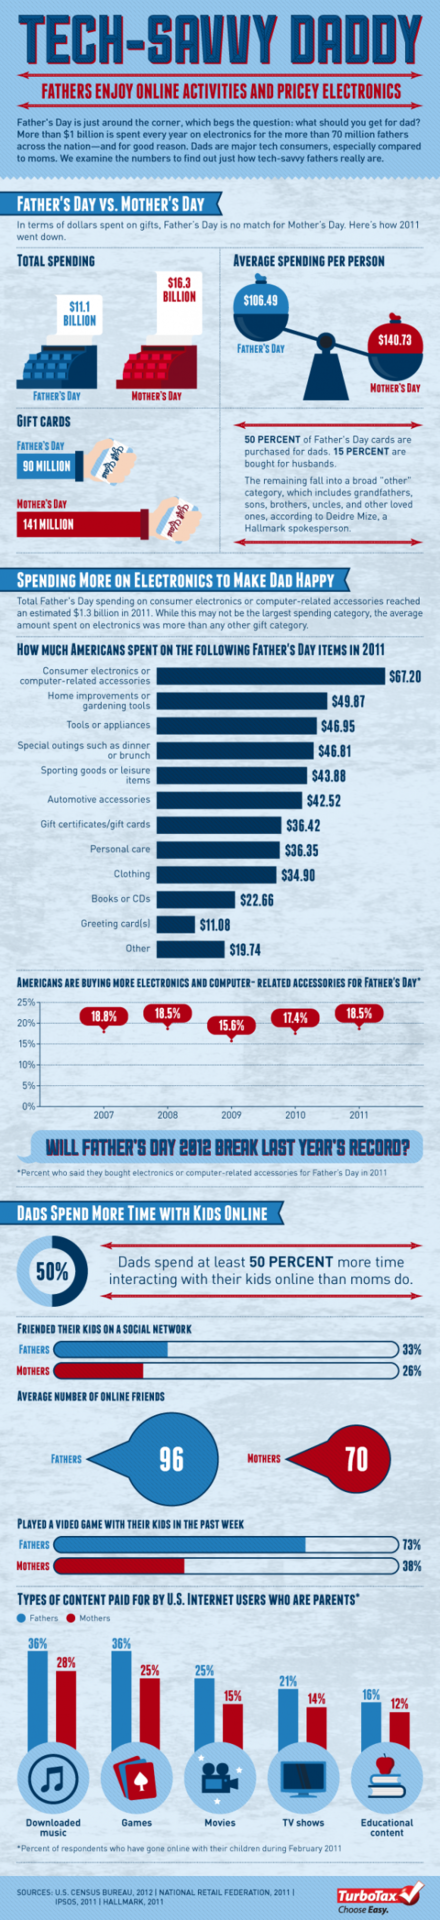 (via Father's Day vs. Mother's Day and Tech-Savvy Daddy | Tax Break: The TurboTax Blog)